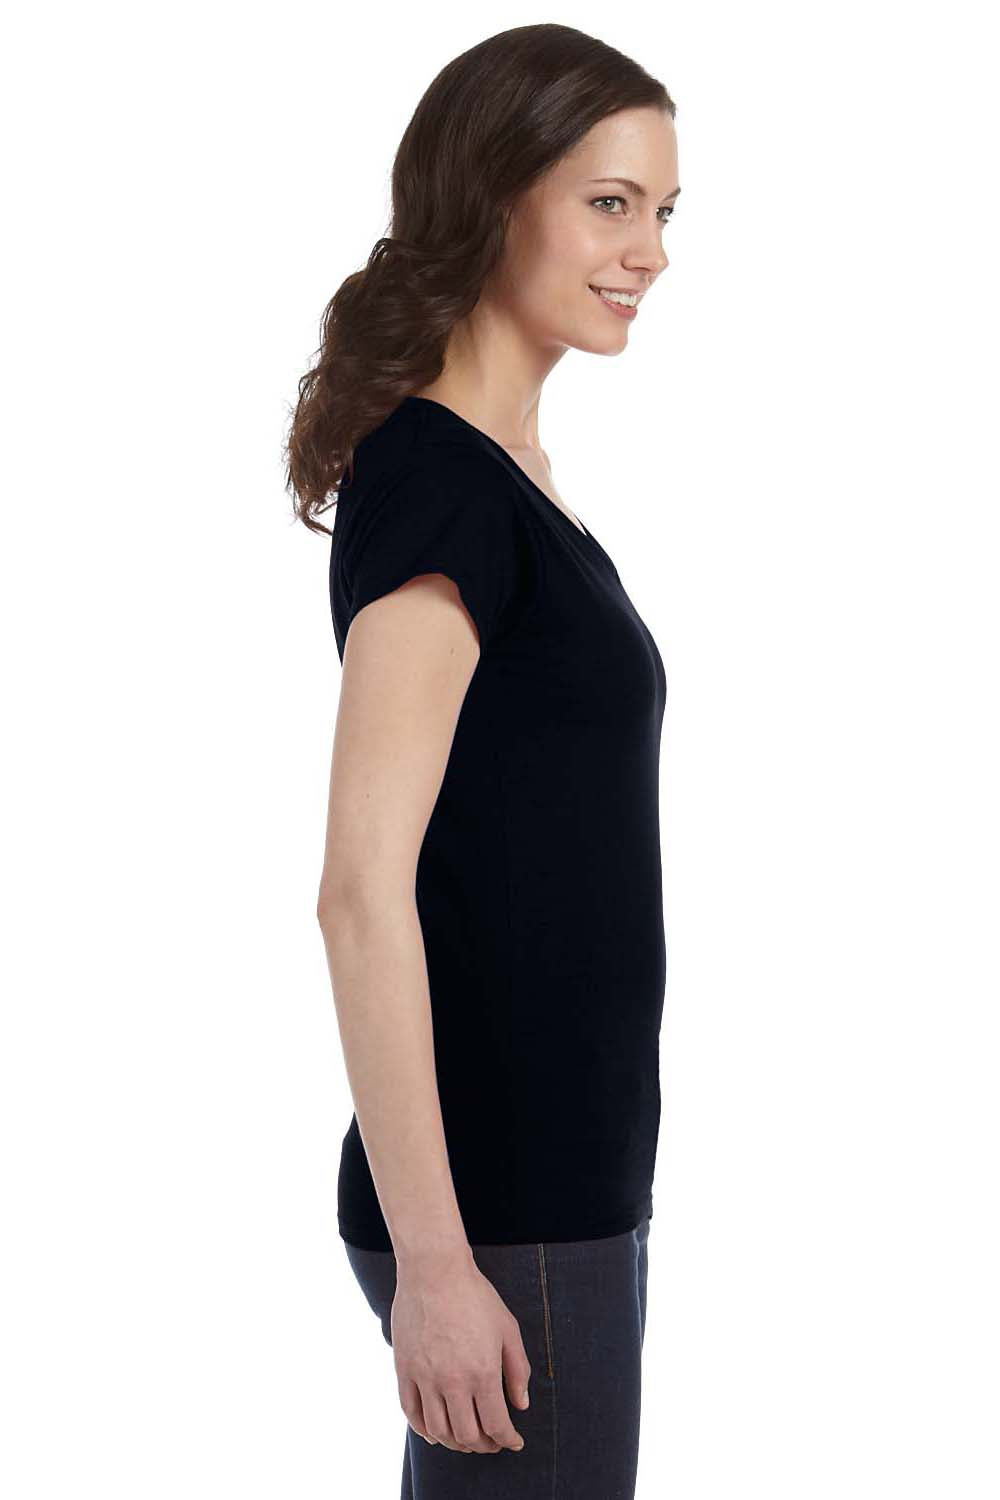 Gildan G64VL Womens Softstyle Short Sleeve V-Neck T-Shirt Black Side